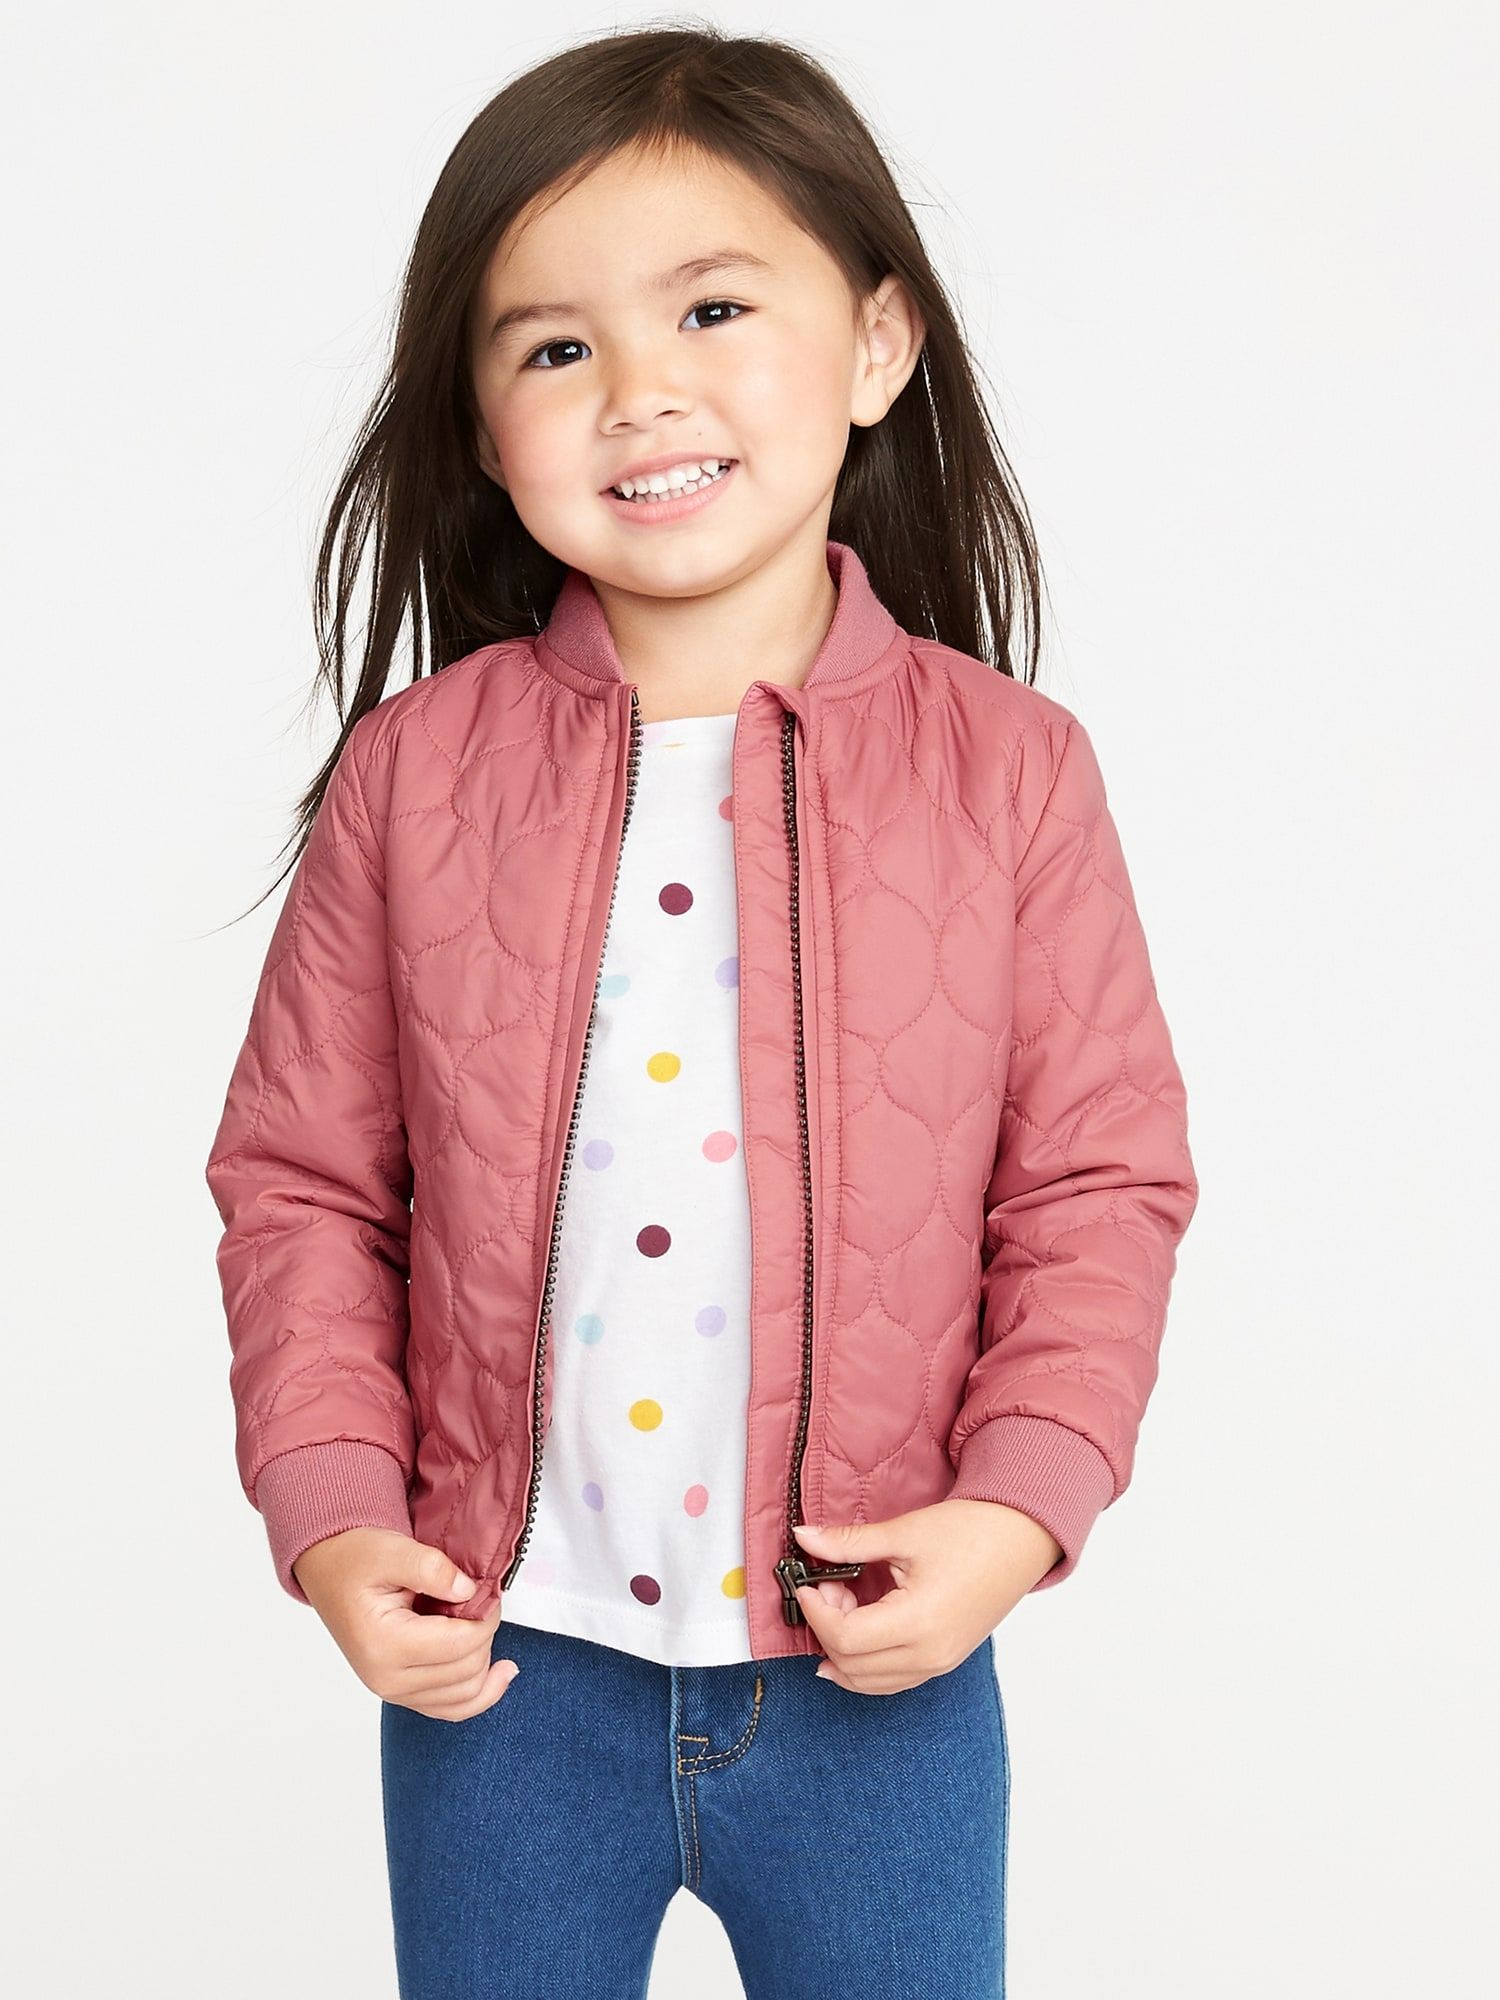 Lightweight Quilted Bomber Jacket For Toddler Girls Romantic Rose Old Navy Toddler Designer Clothes Toddler Fashion Kids Bomber Jacket